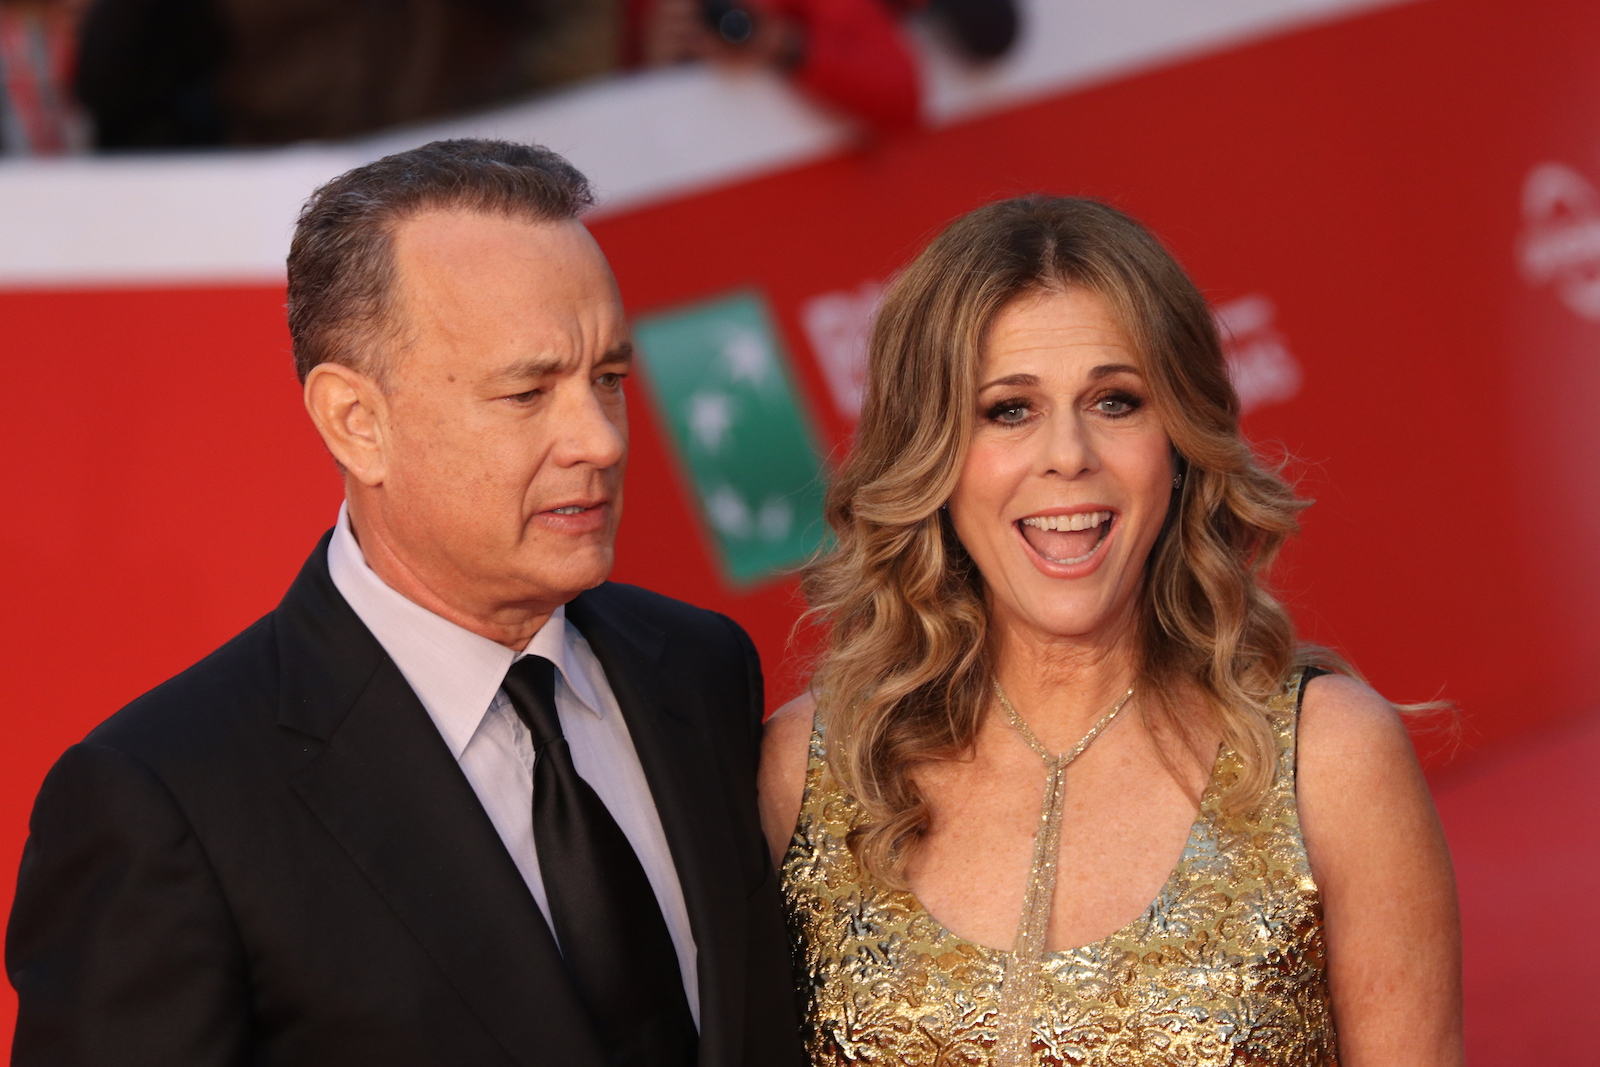 Roma 2016: Tom Hanks insieme a Rita Wilson posano sul red carpet